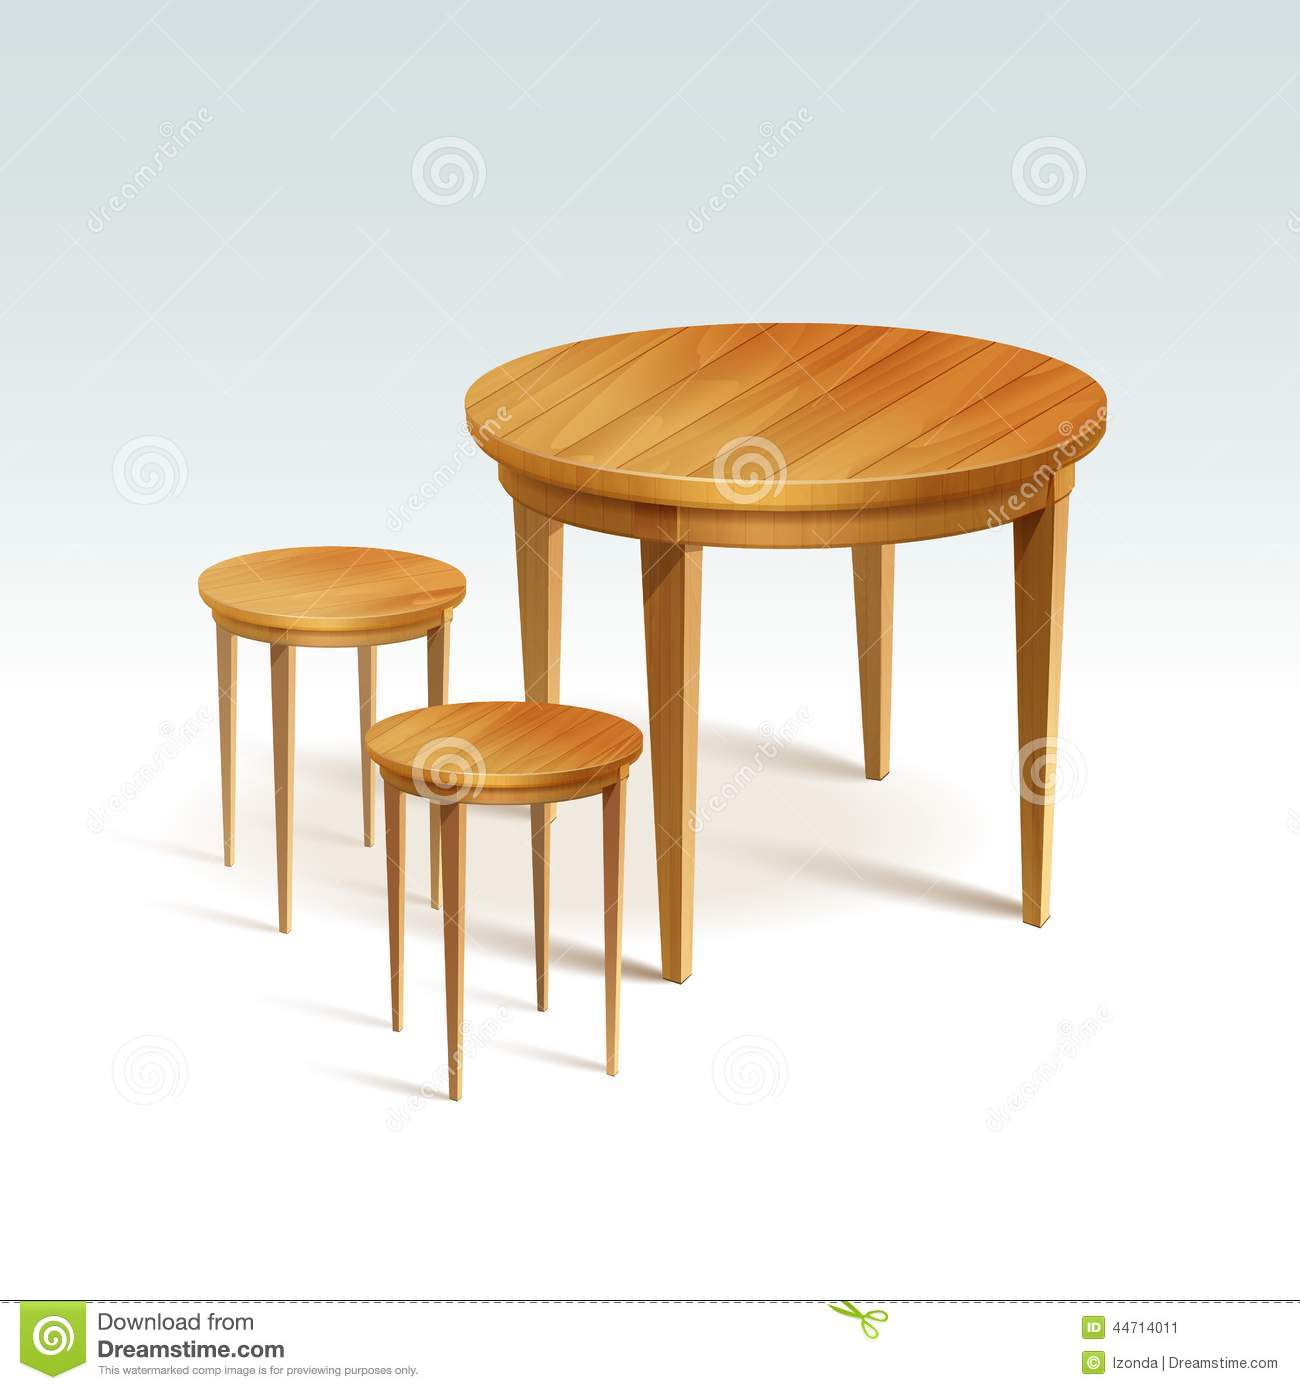 Table With Two Chairs Vector Empty Round Wood Table With Two Chairs Stock Vector